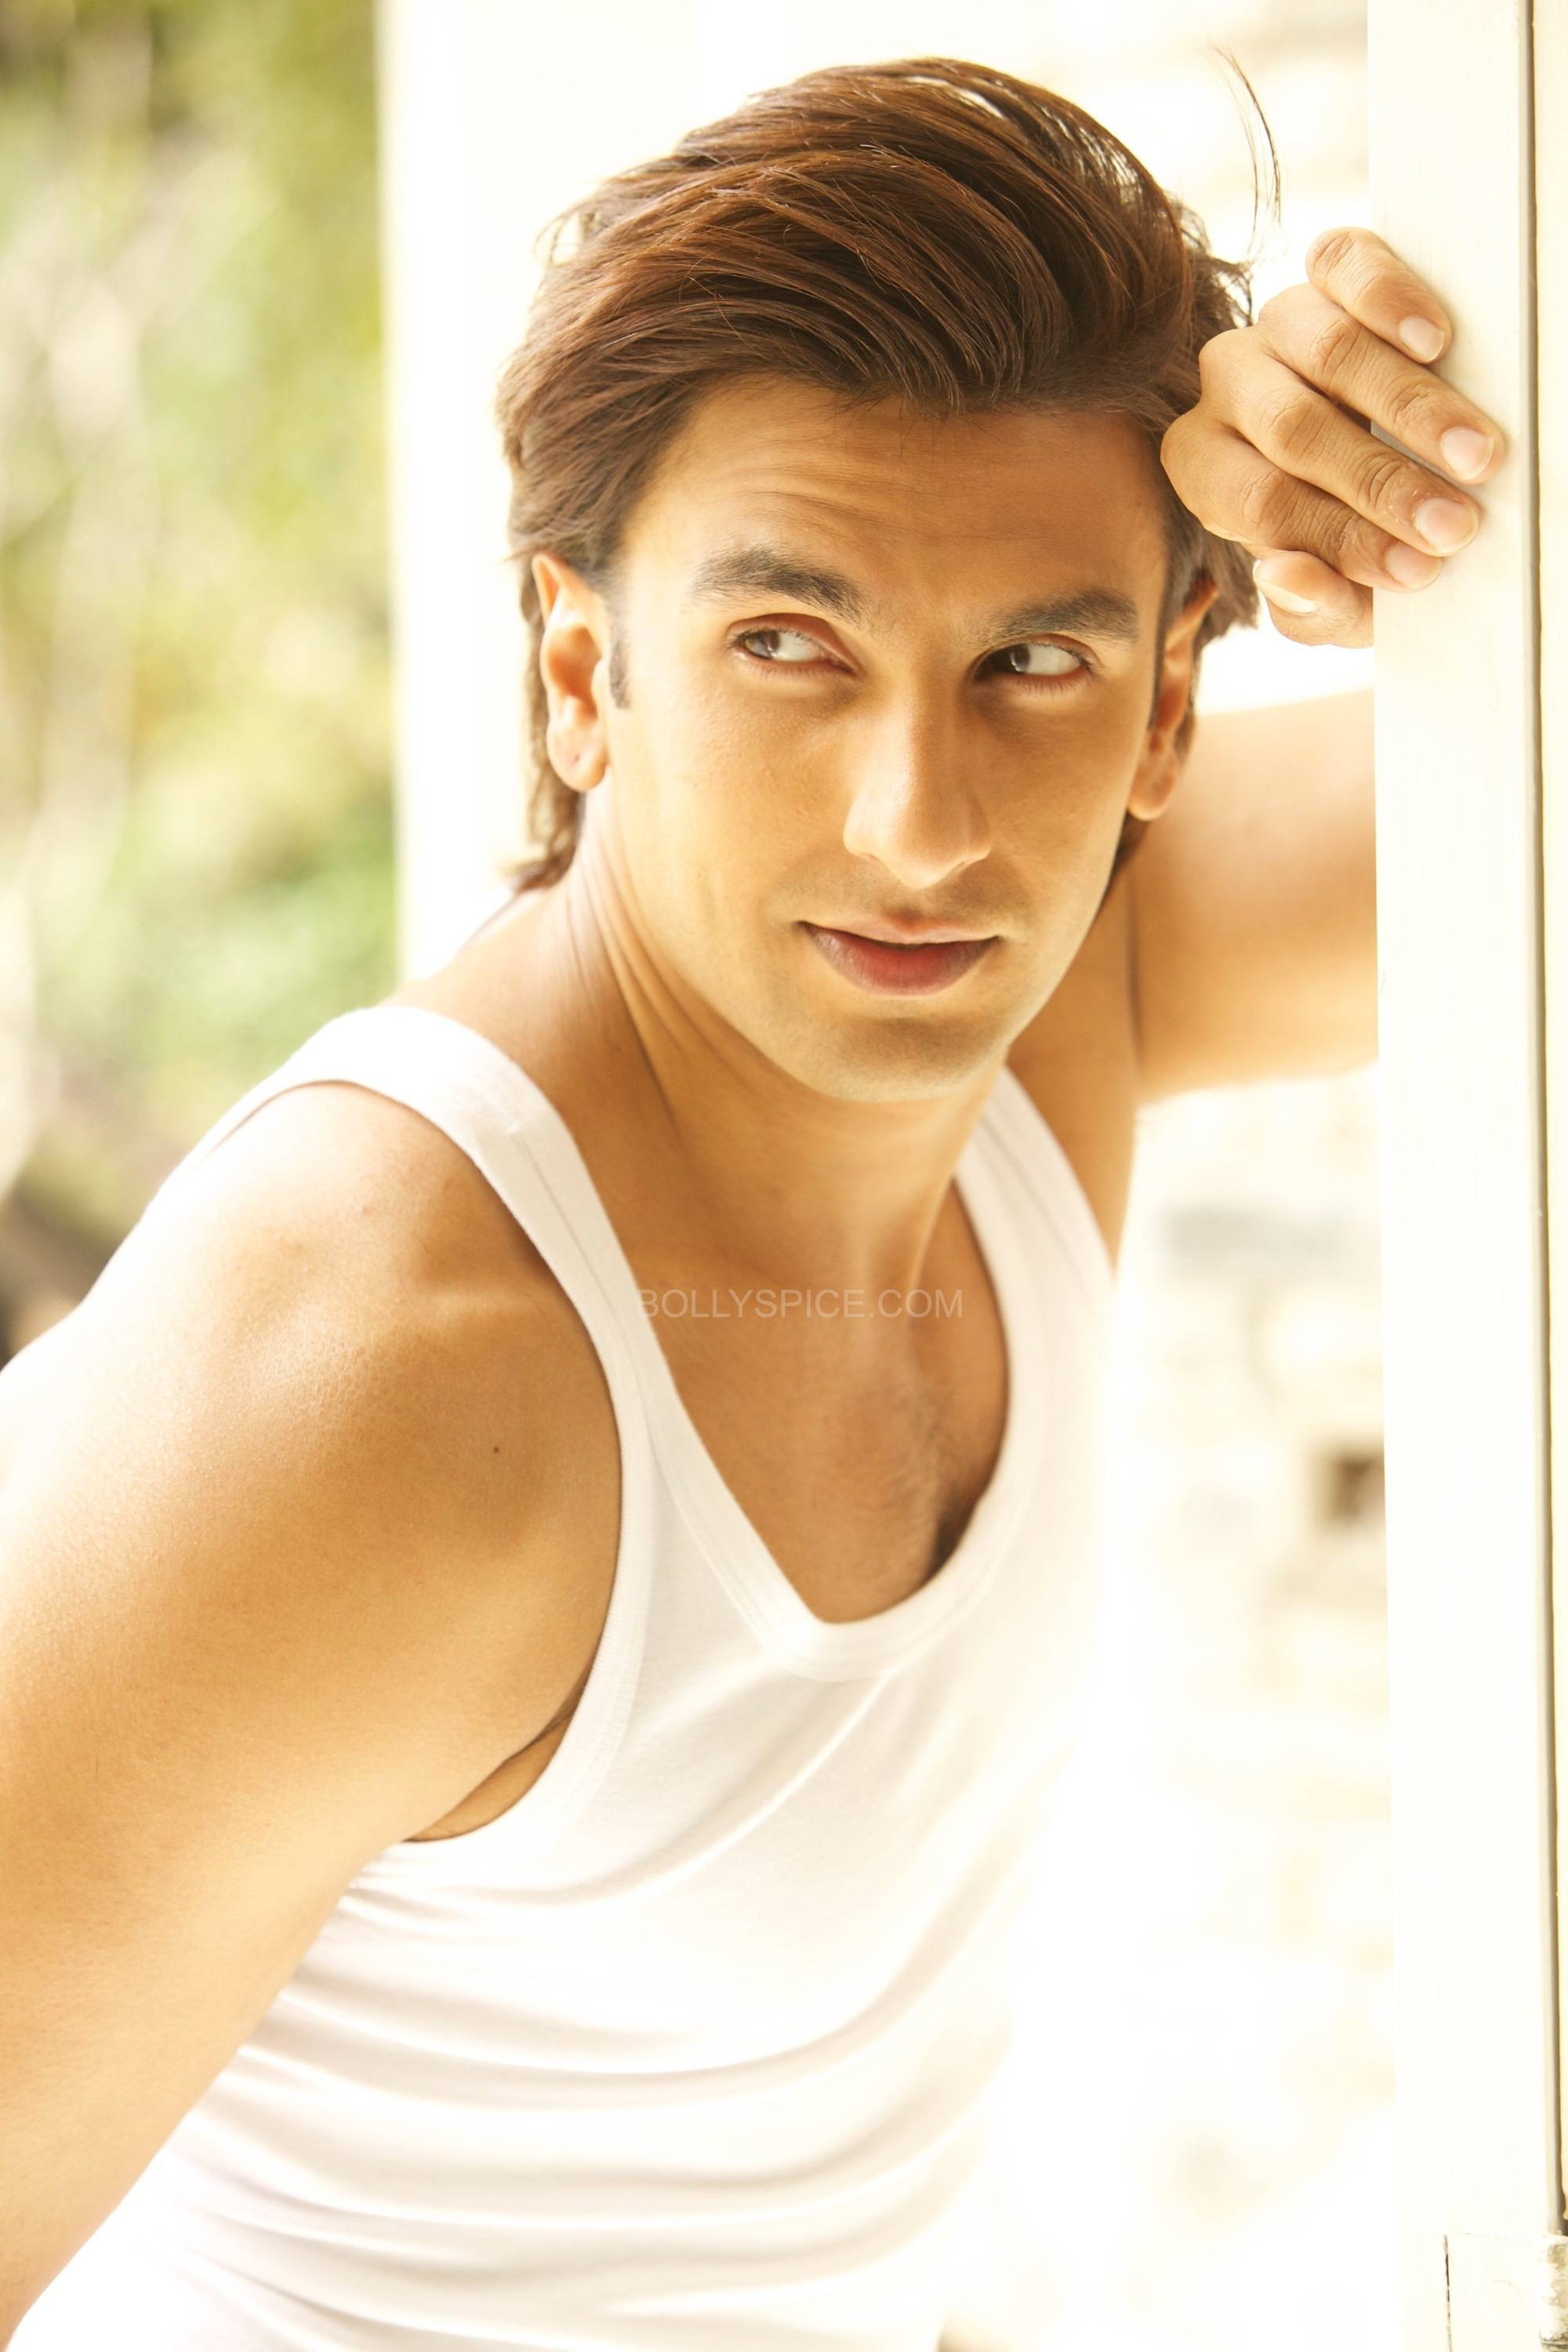 ranveersingh2 Ranveer Singhs new endorsement pushes the envelope!